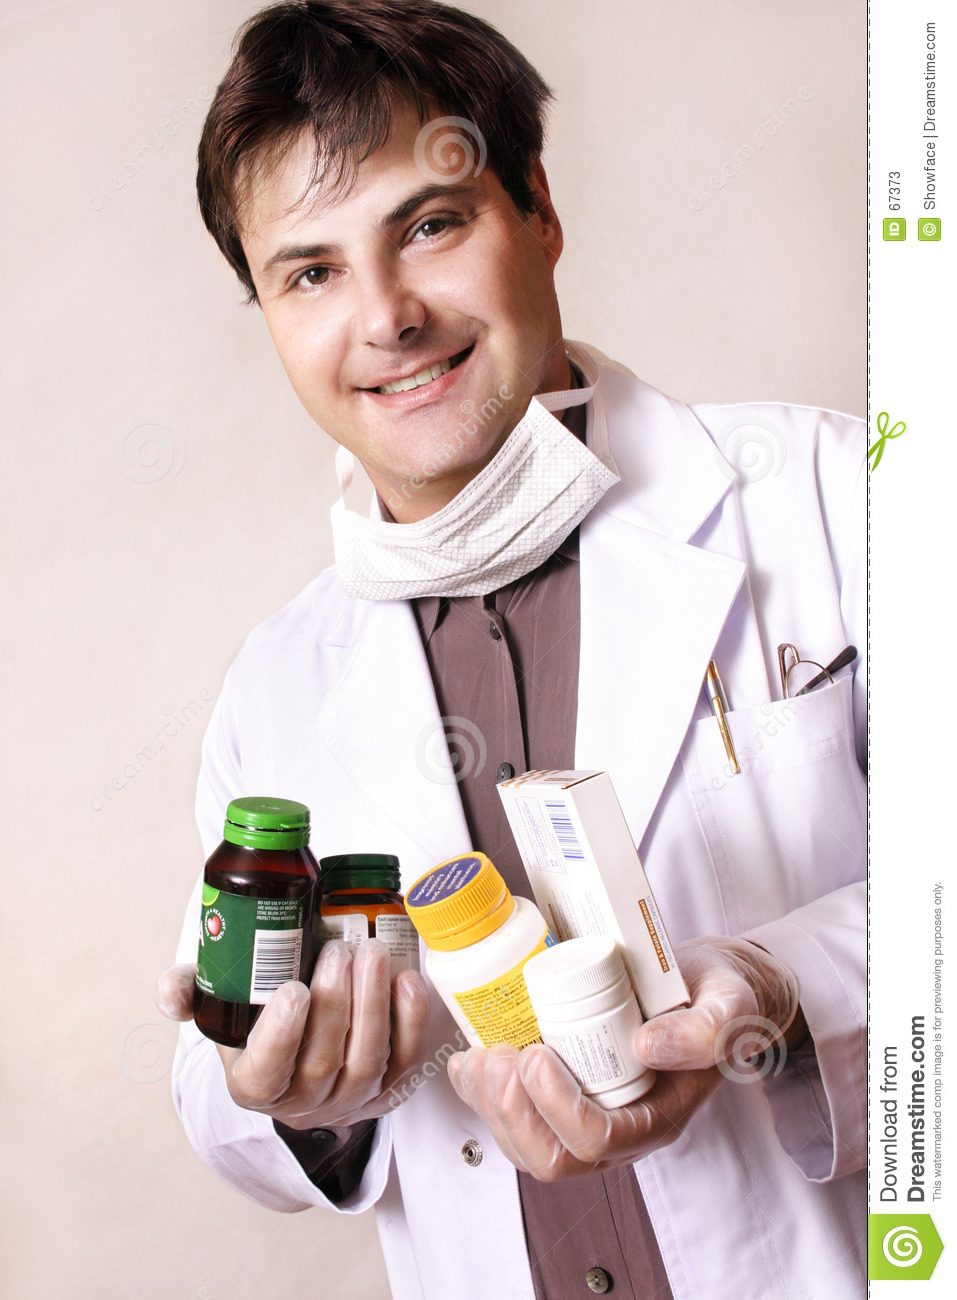 Medicines and supplements